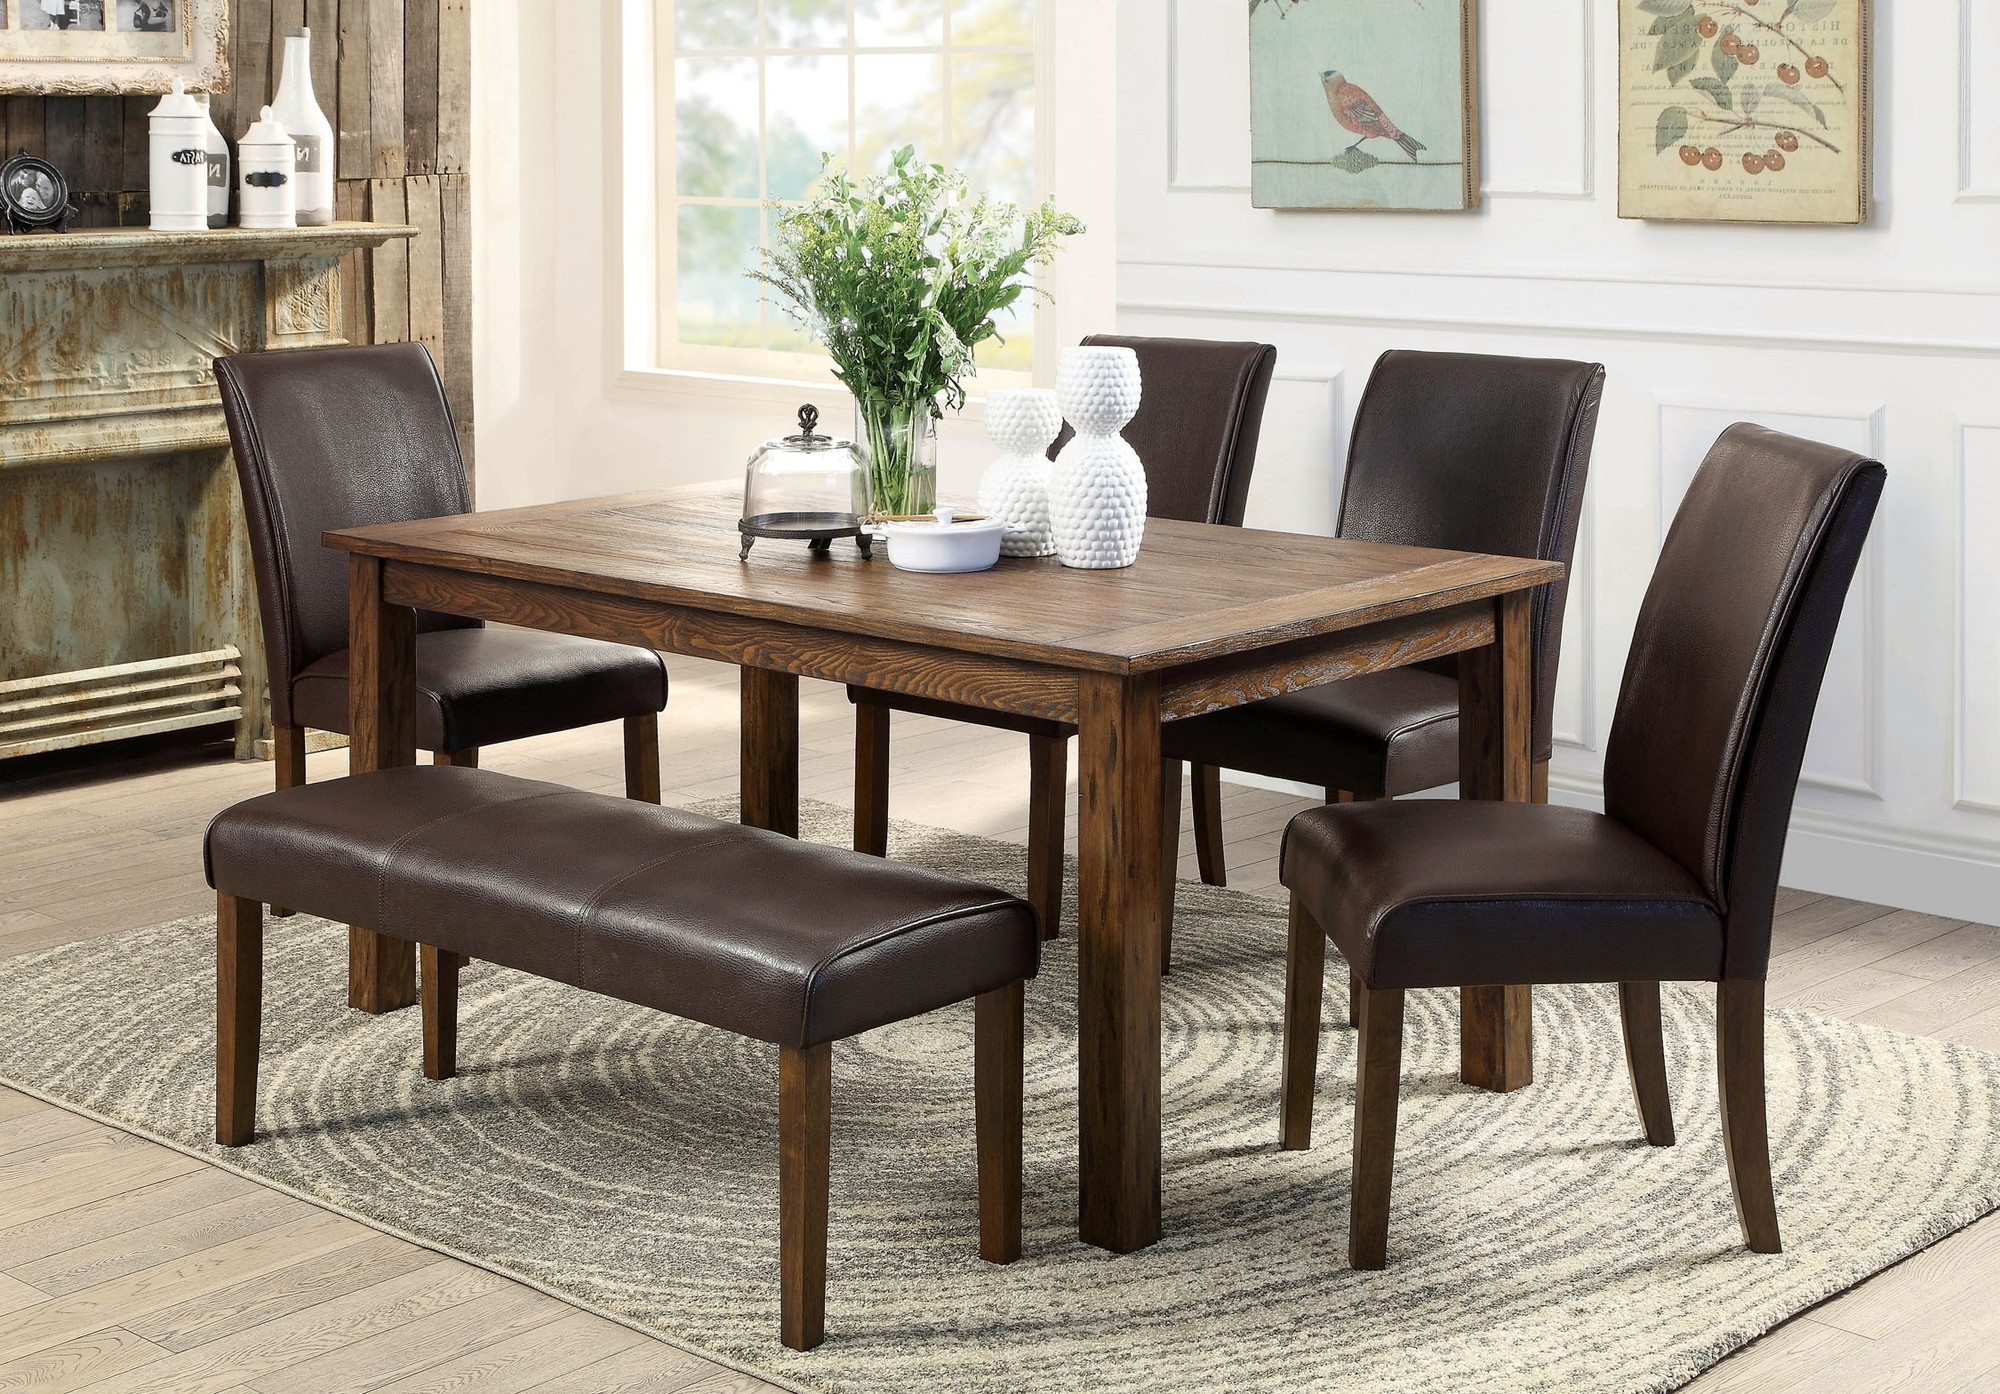 Homesfeed With Rectangular Dining Tables Sets (View 5 of 25)